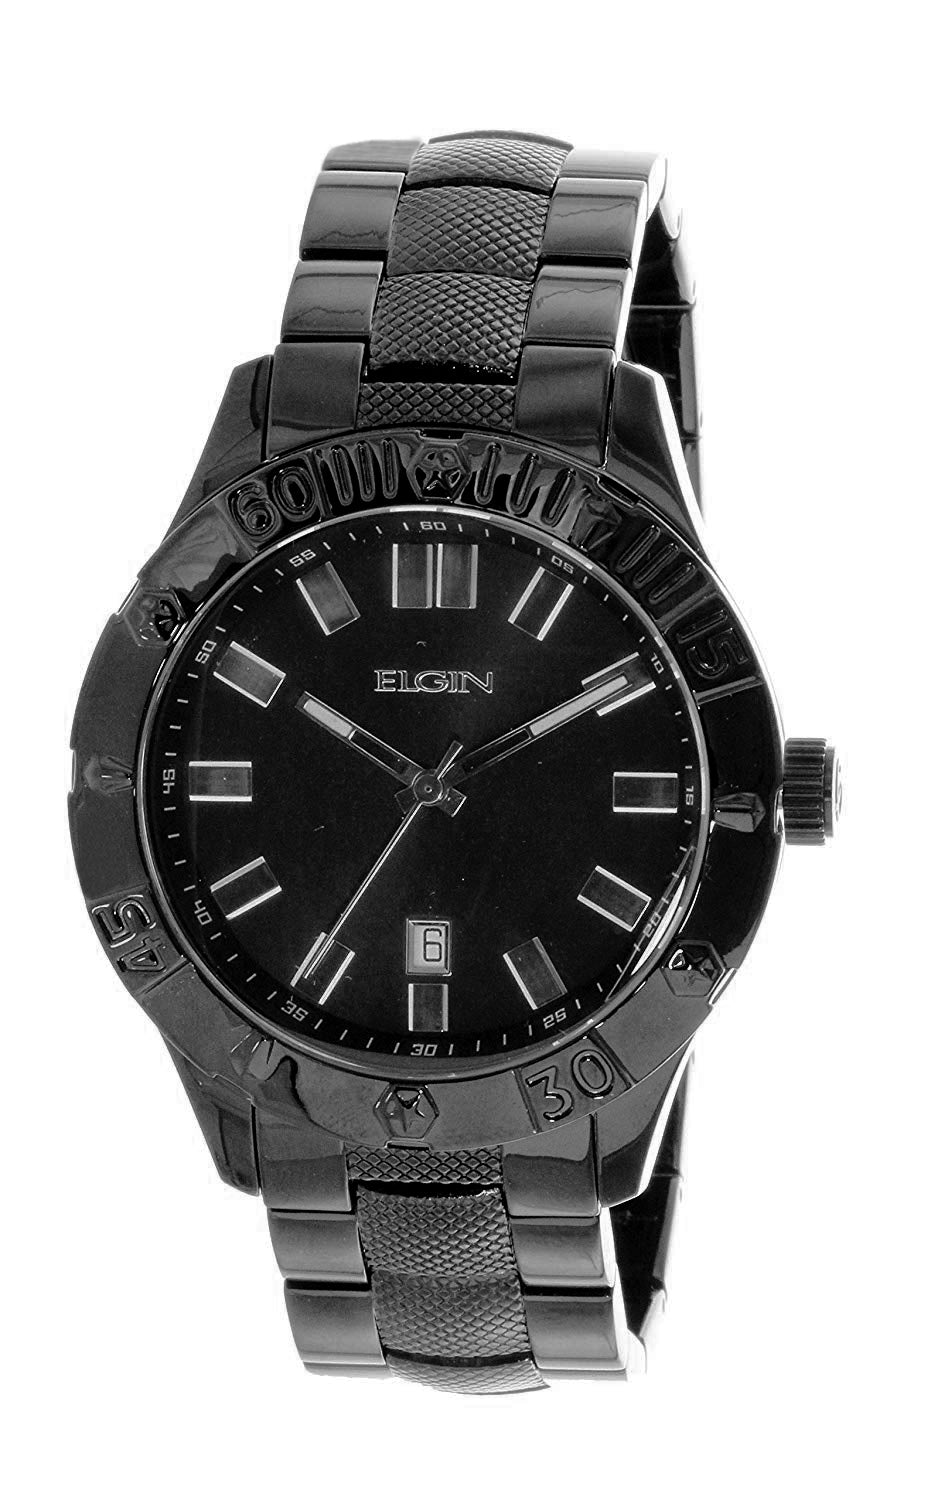 Elgin Men's Round Analog Black On Black Watch With Date FG7090